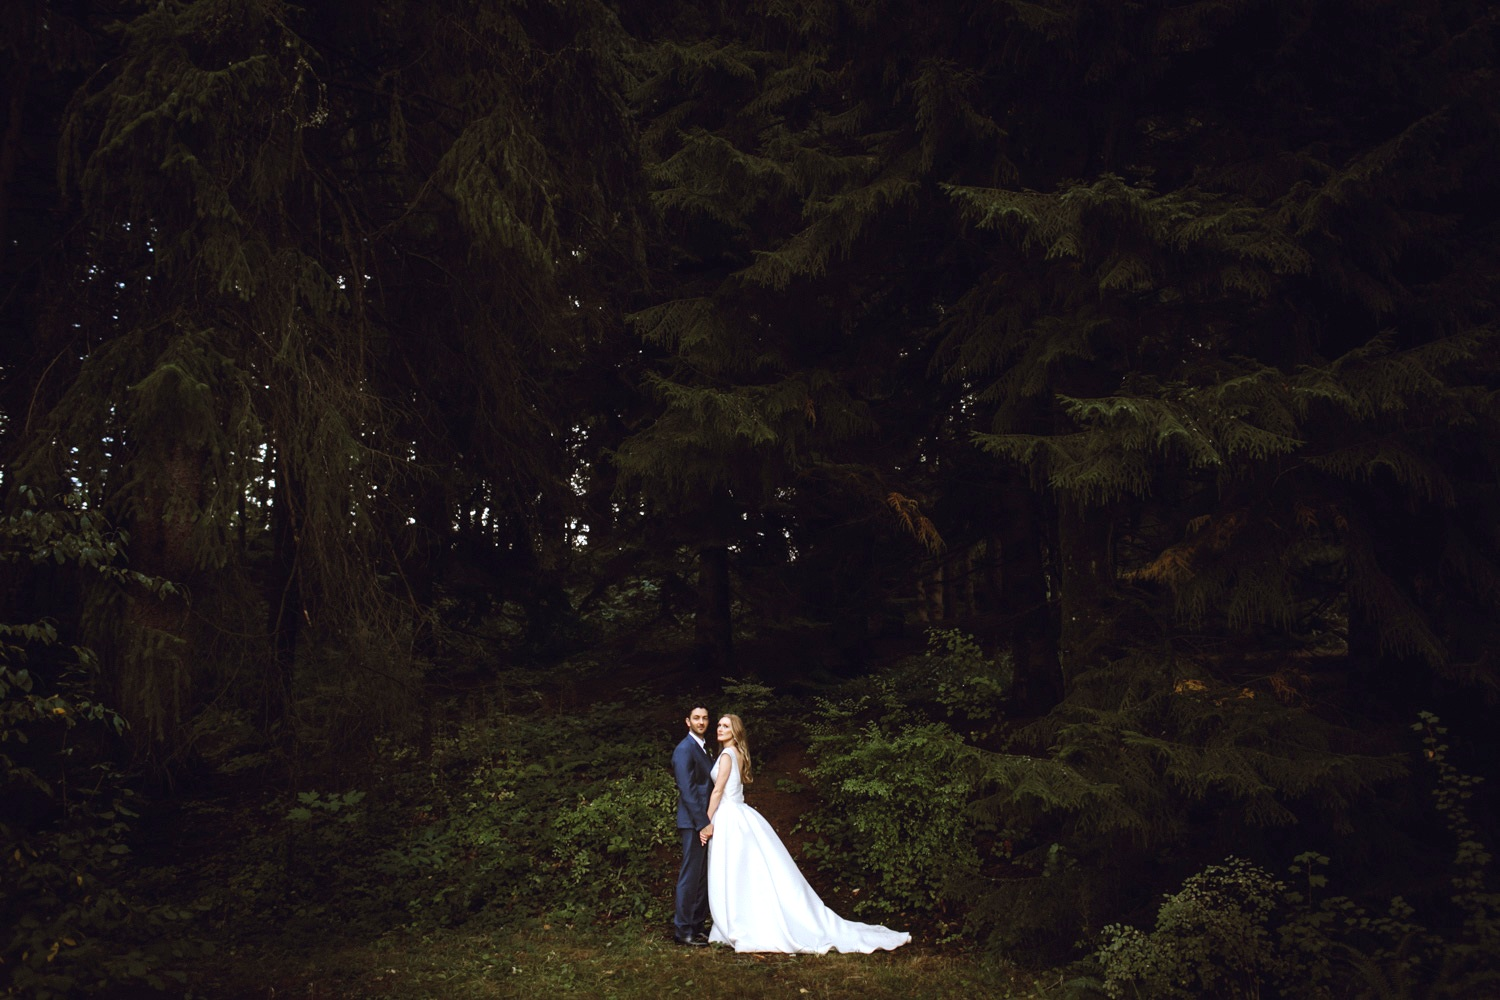 Portland, oregon - Downtown cityscapes, deep forests, and all the food you can eat - with a ton of amazing spots for a Portland elopement.